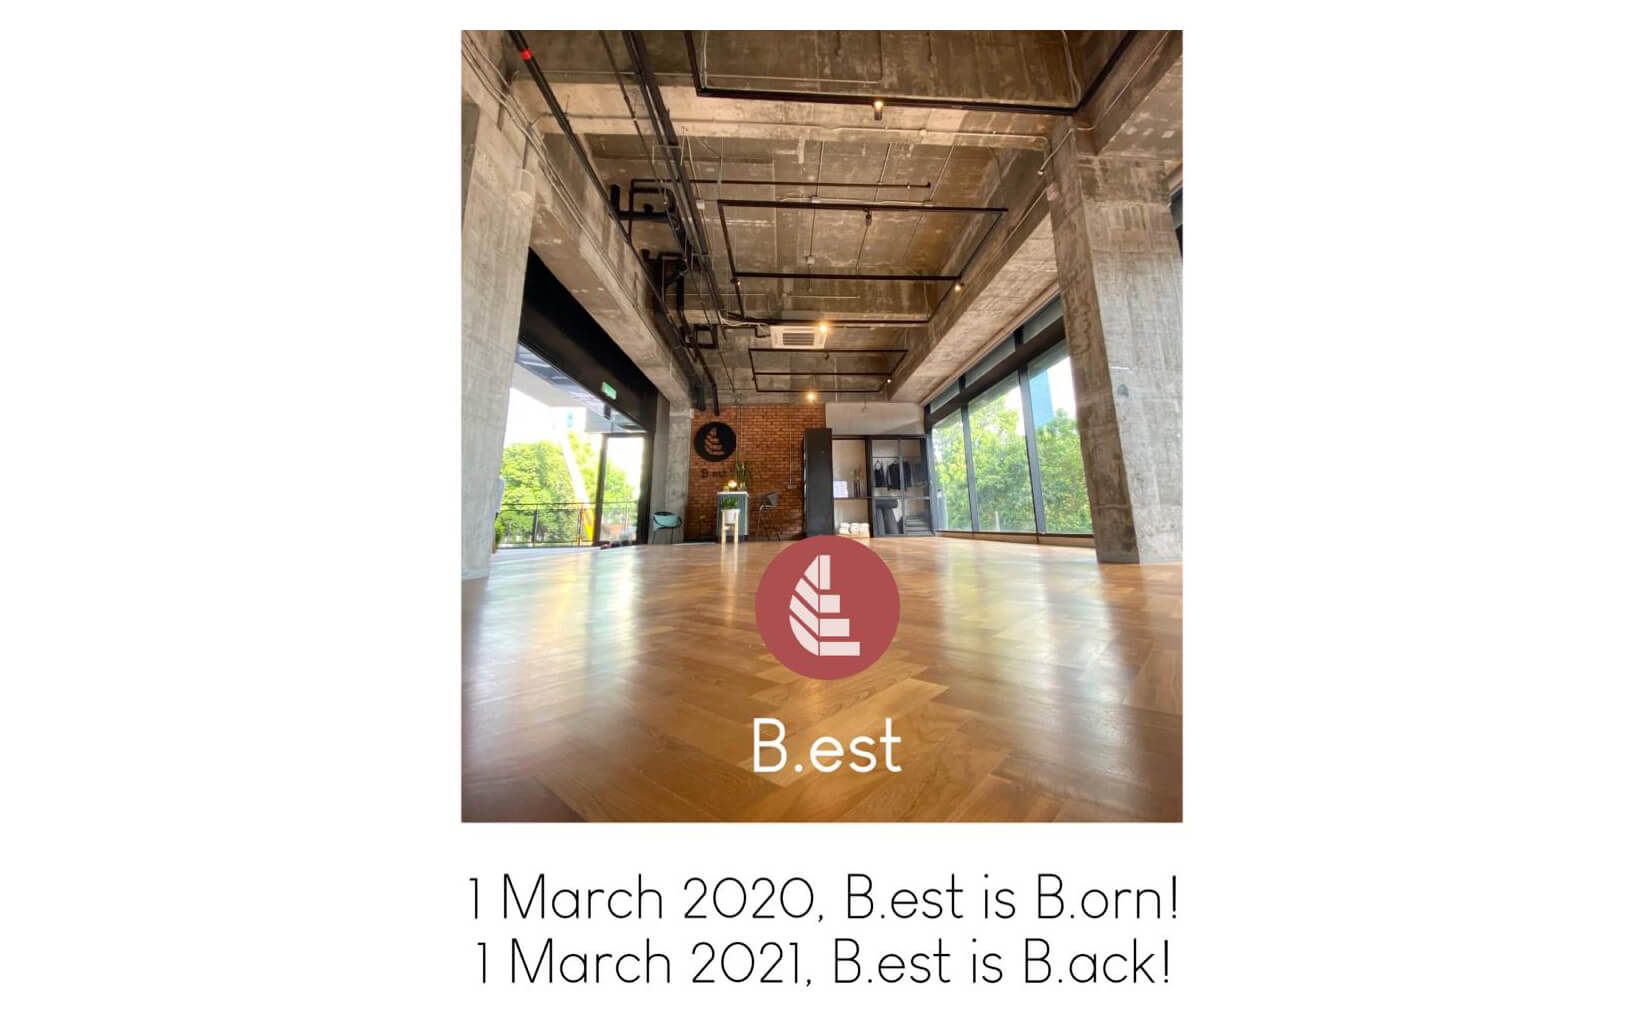 B.est reopens its doors on Monday March 1st